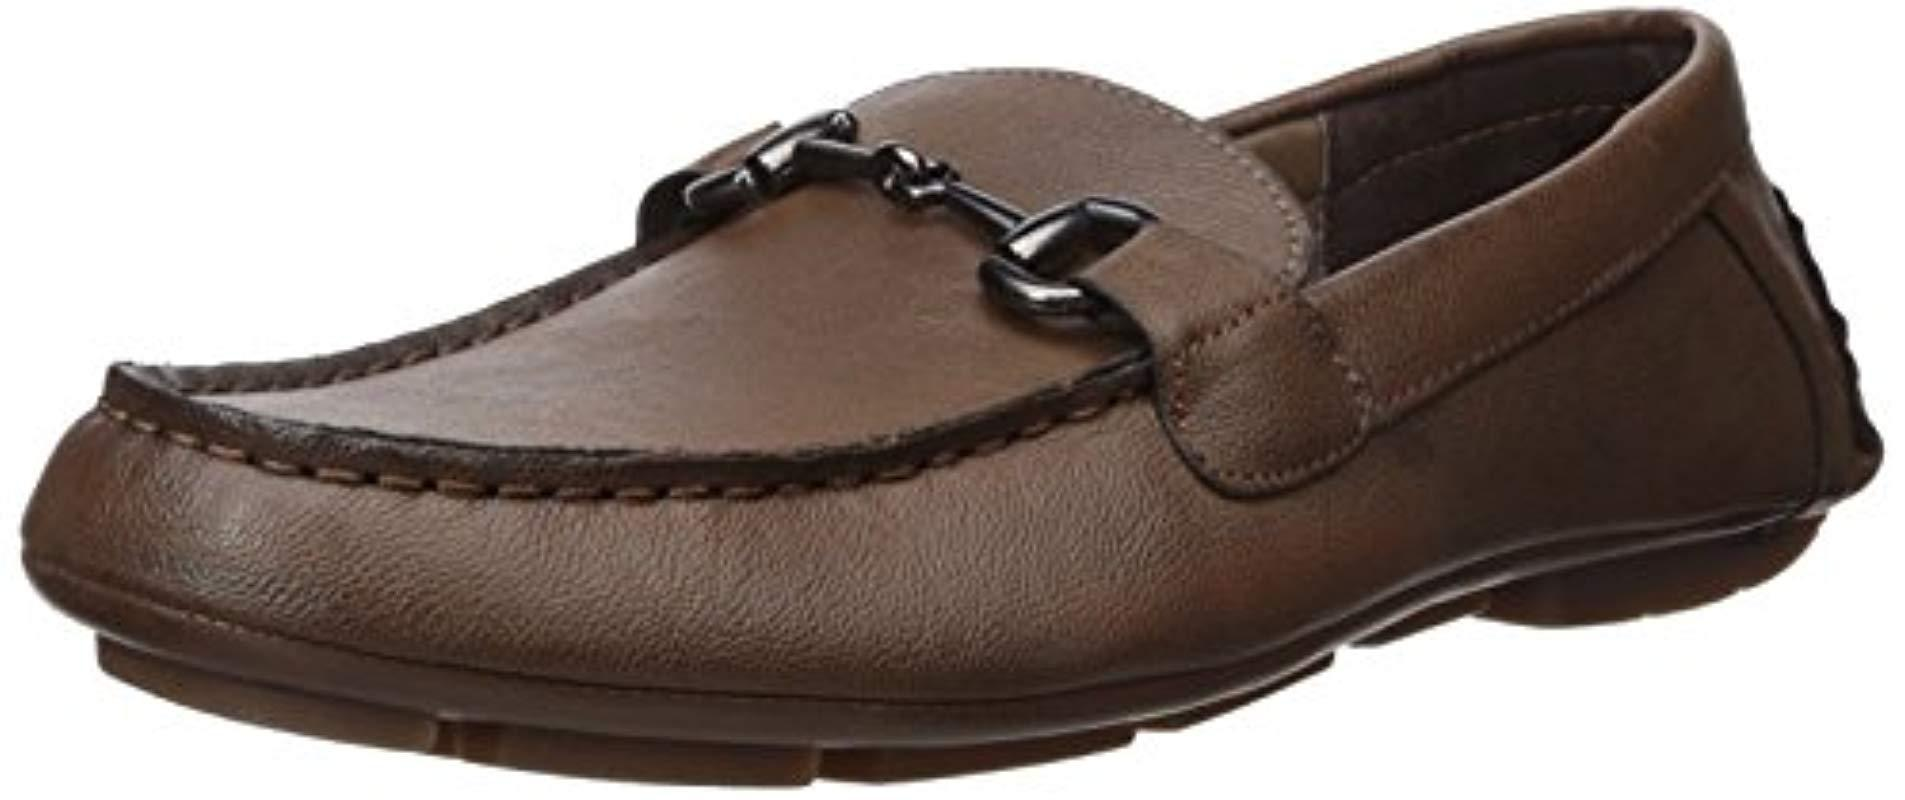 833ed0719a0 Lyst - Perry Ellis Nick Driving Style Loafer in Brown for Men - Save 4%